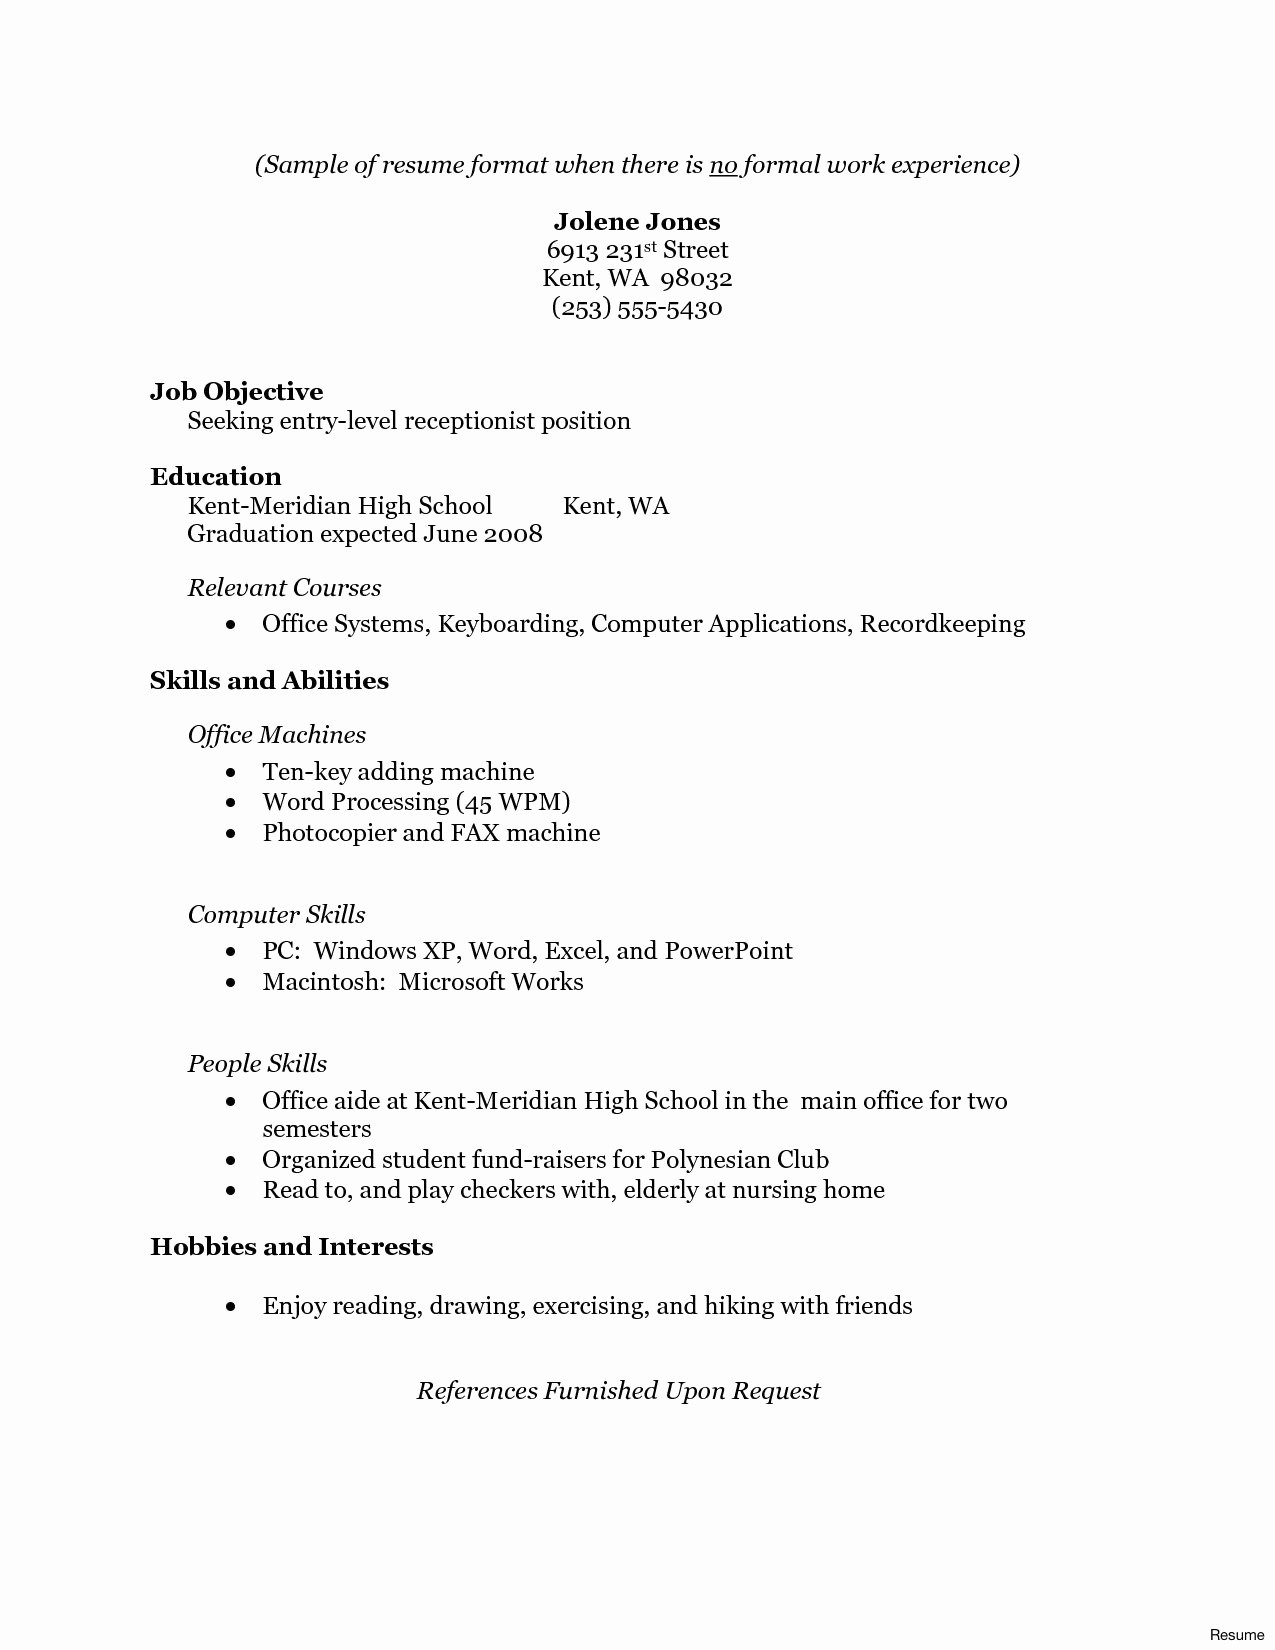 Law School Resumes - Resume Professional Summary Examples Awesome Resume for Law School